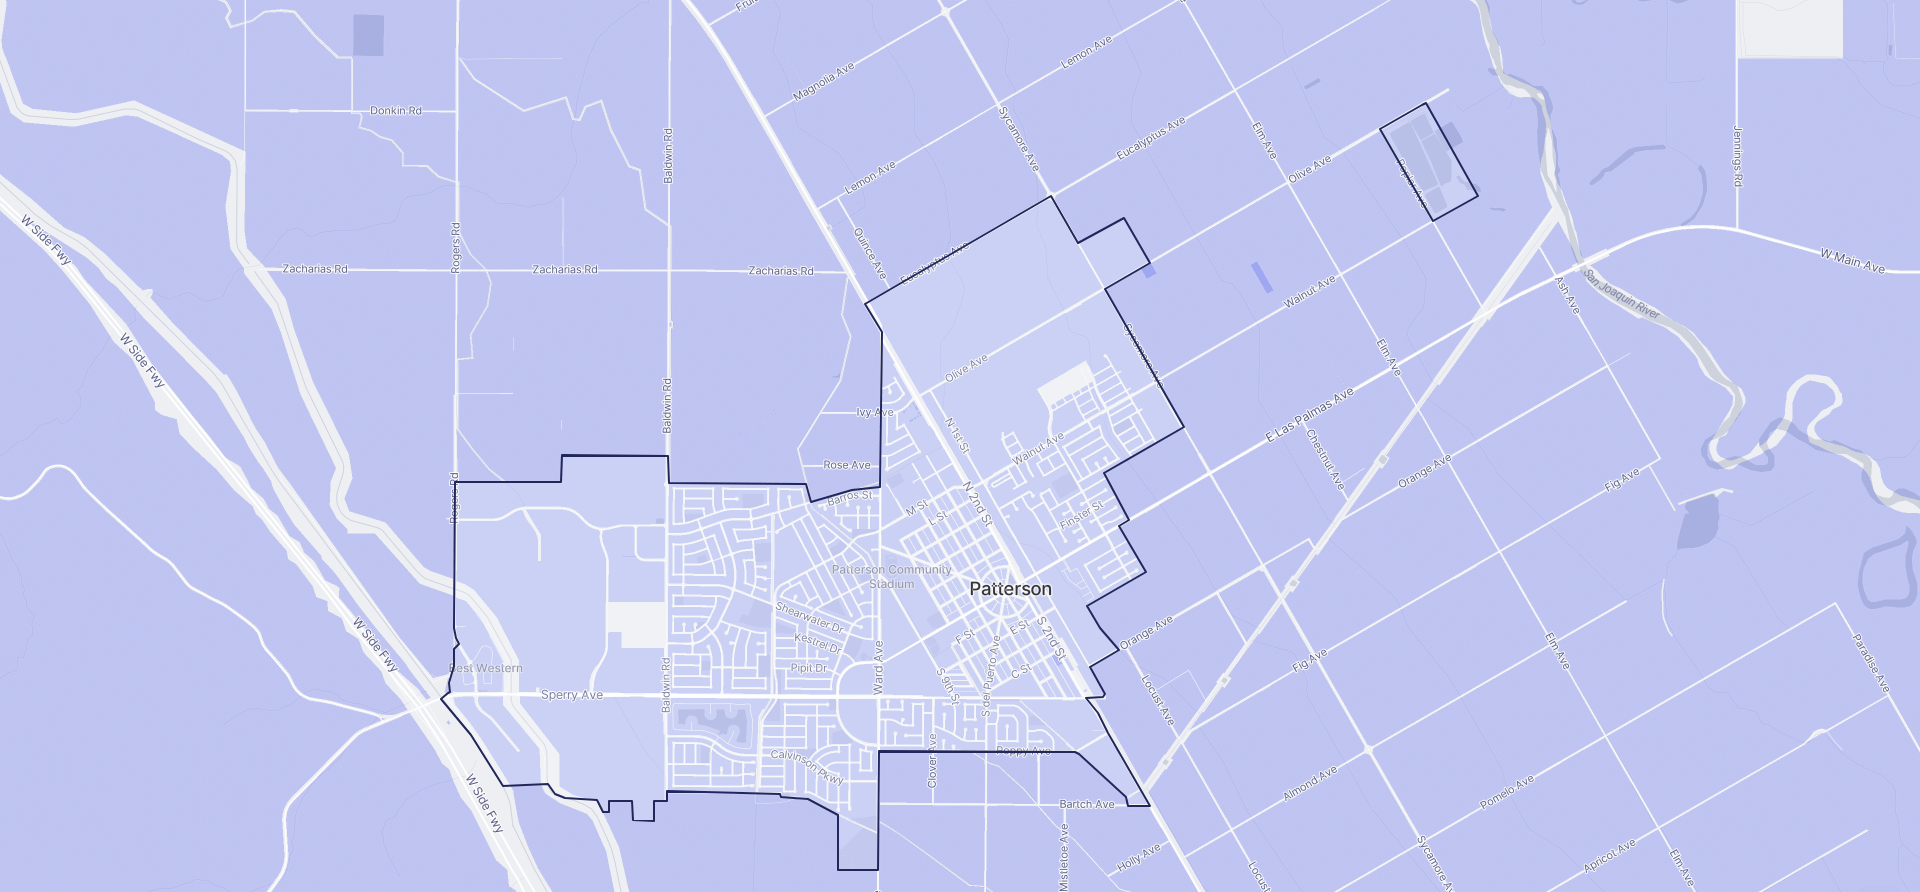 Image of Patterson boundaries on a map.